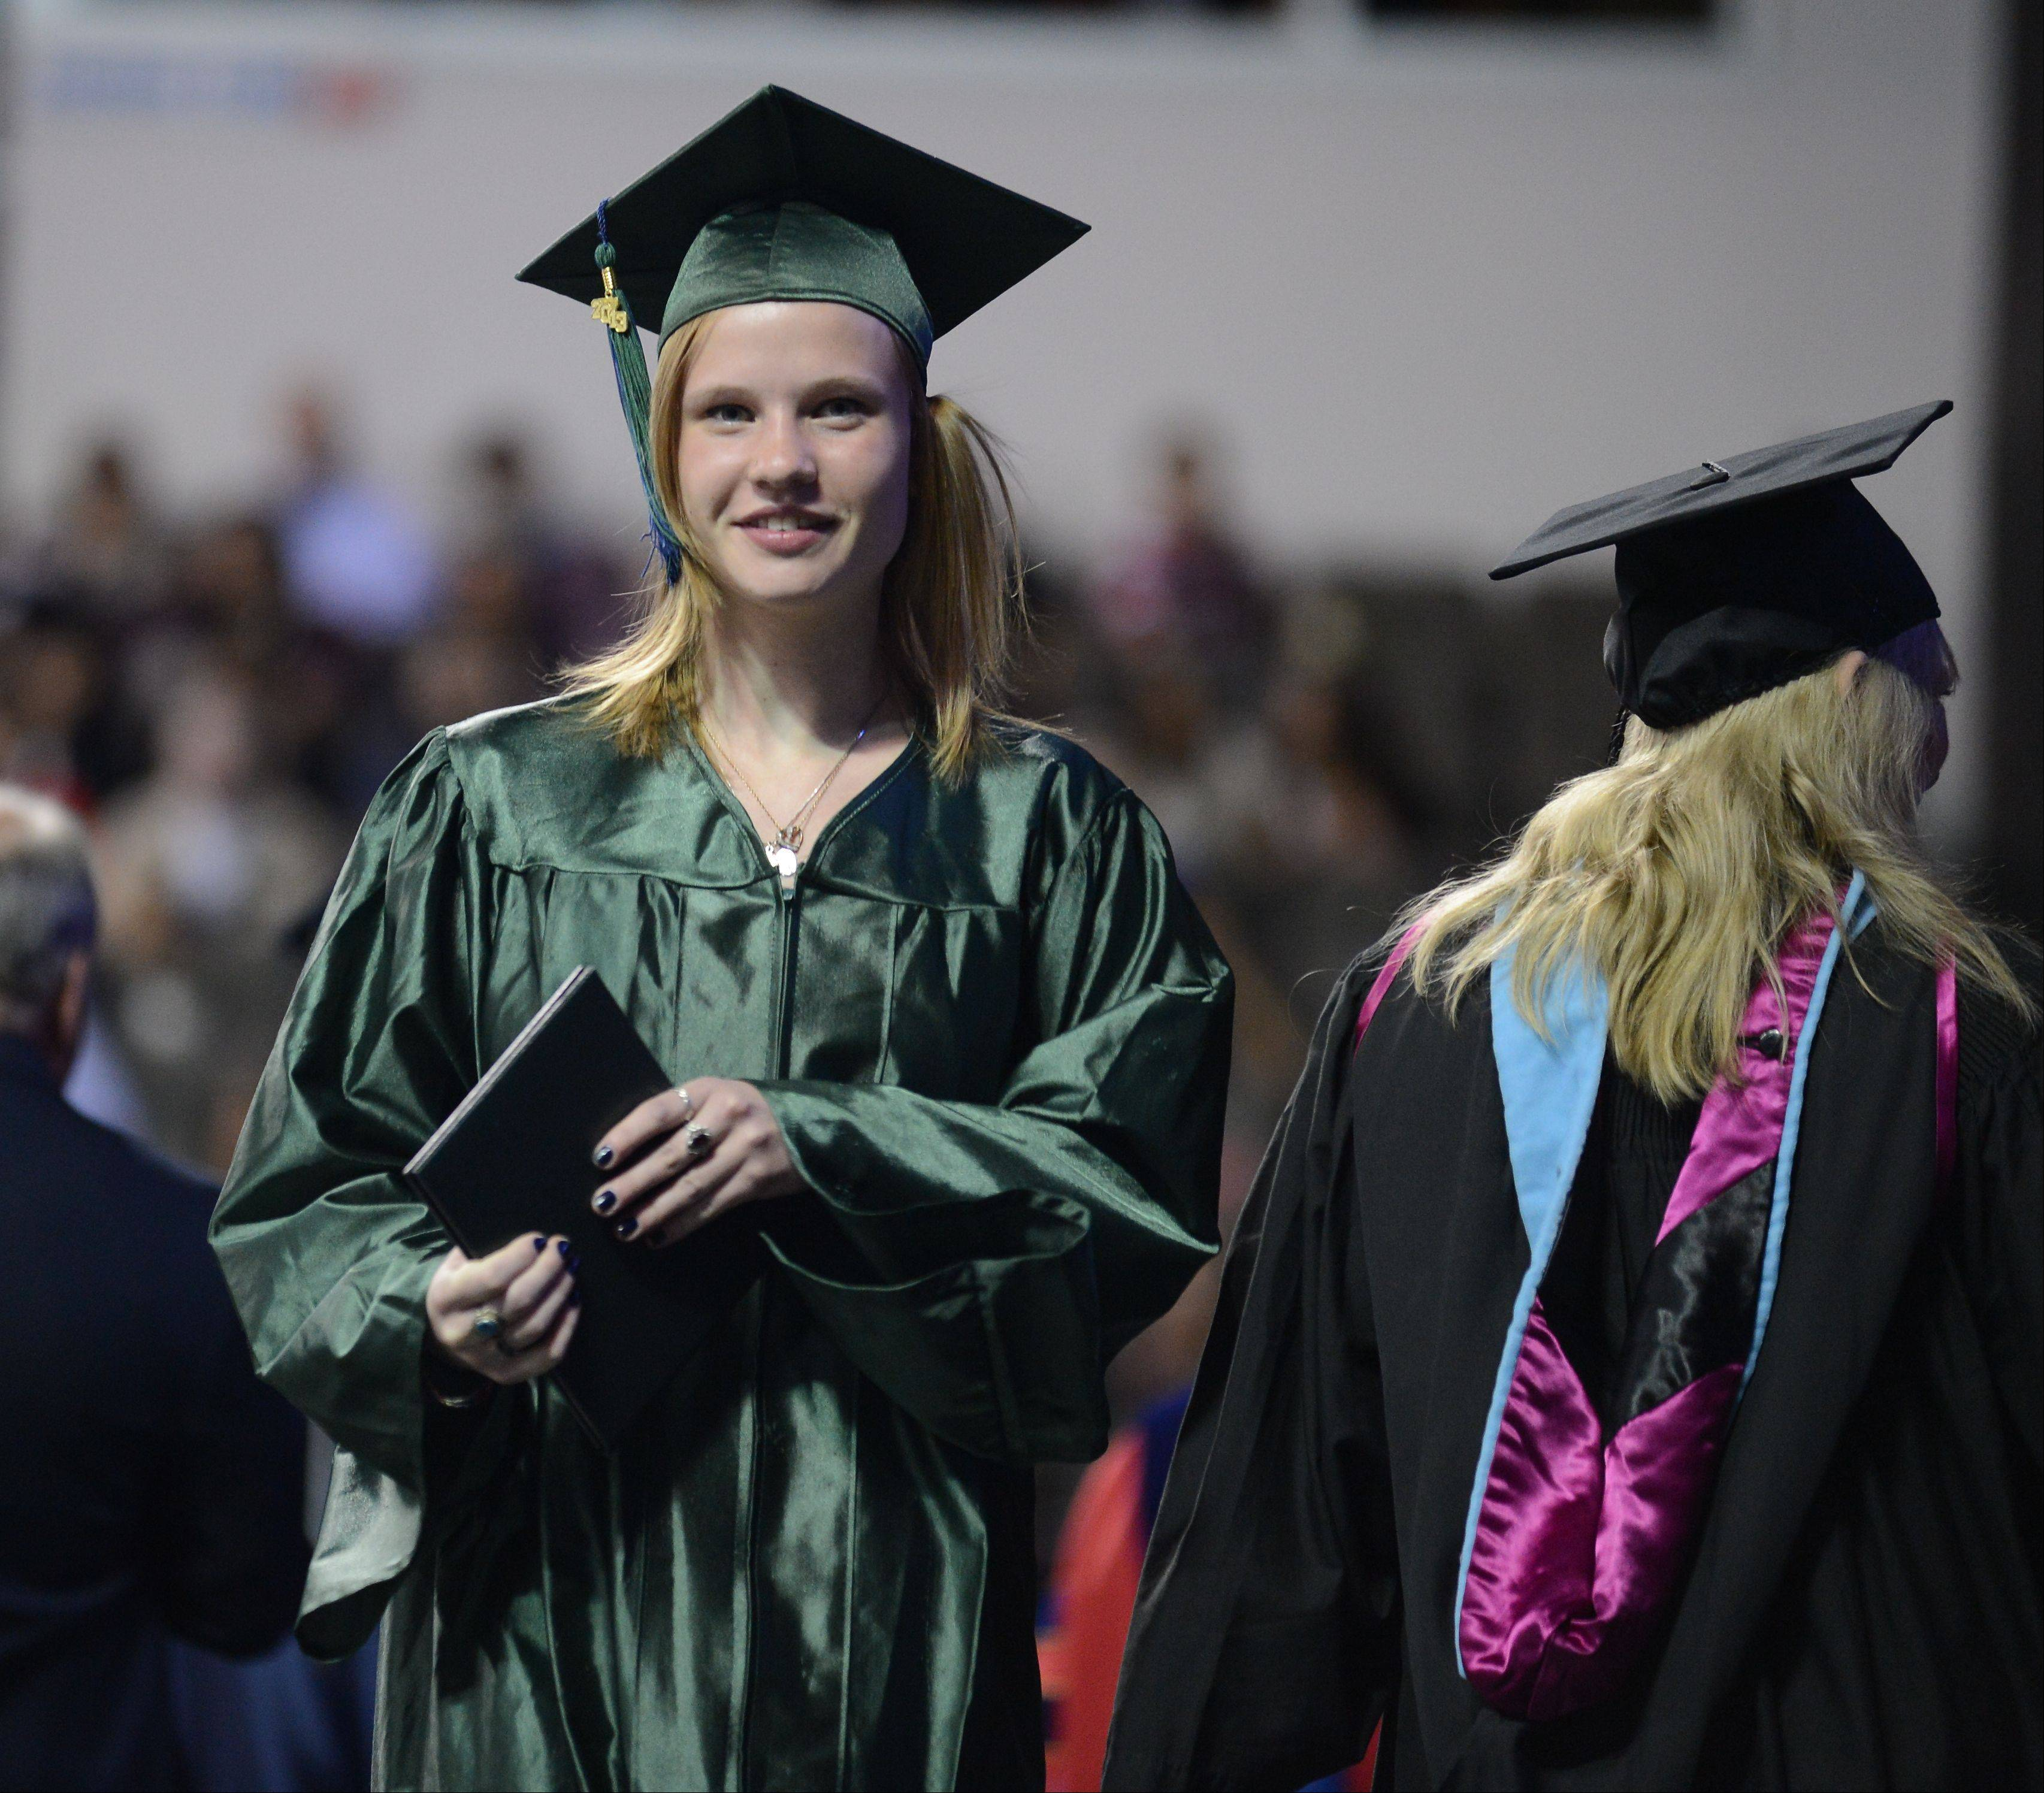 Images from the Bartlett High School commencement ceremony Saturday, May 25, 2013 at the Sears Centre in Hoffman Estates.